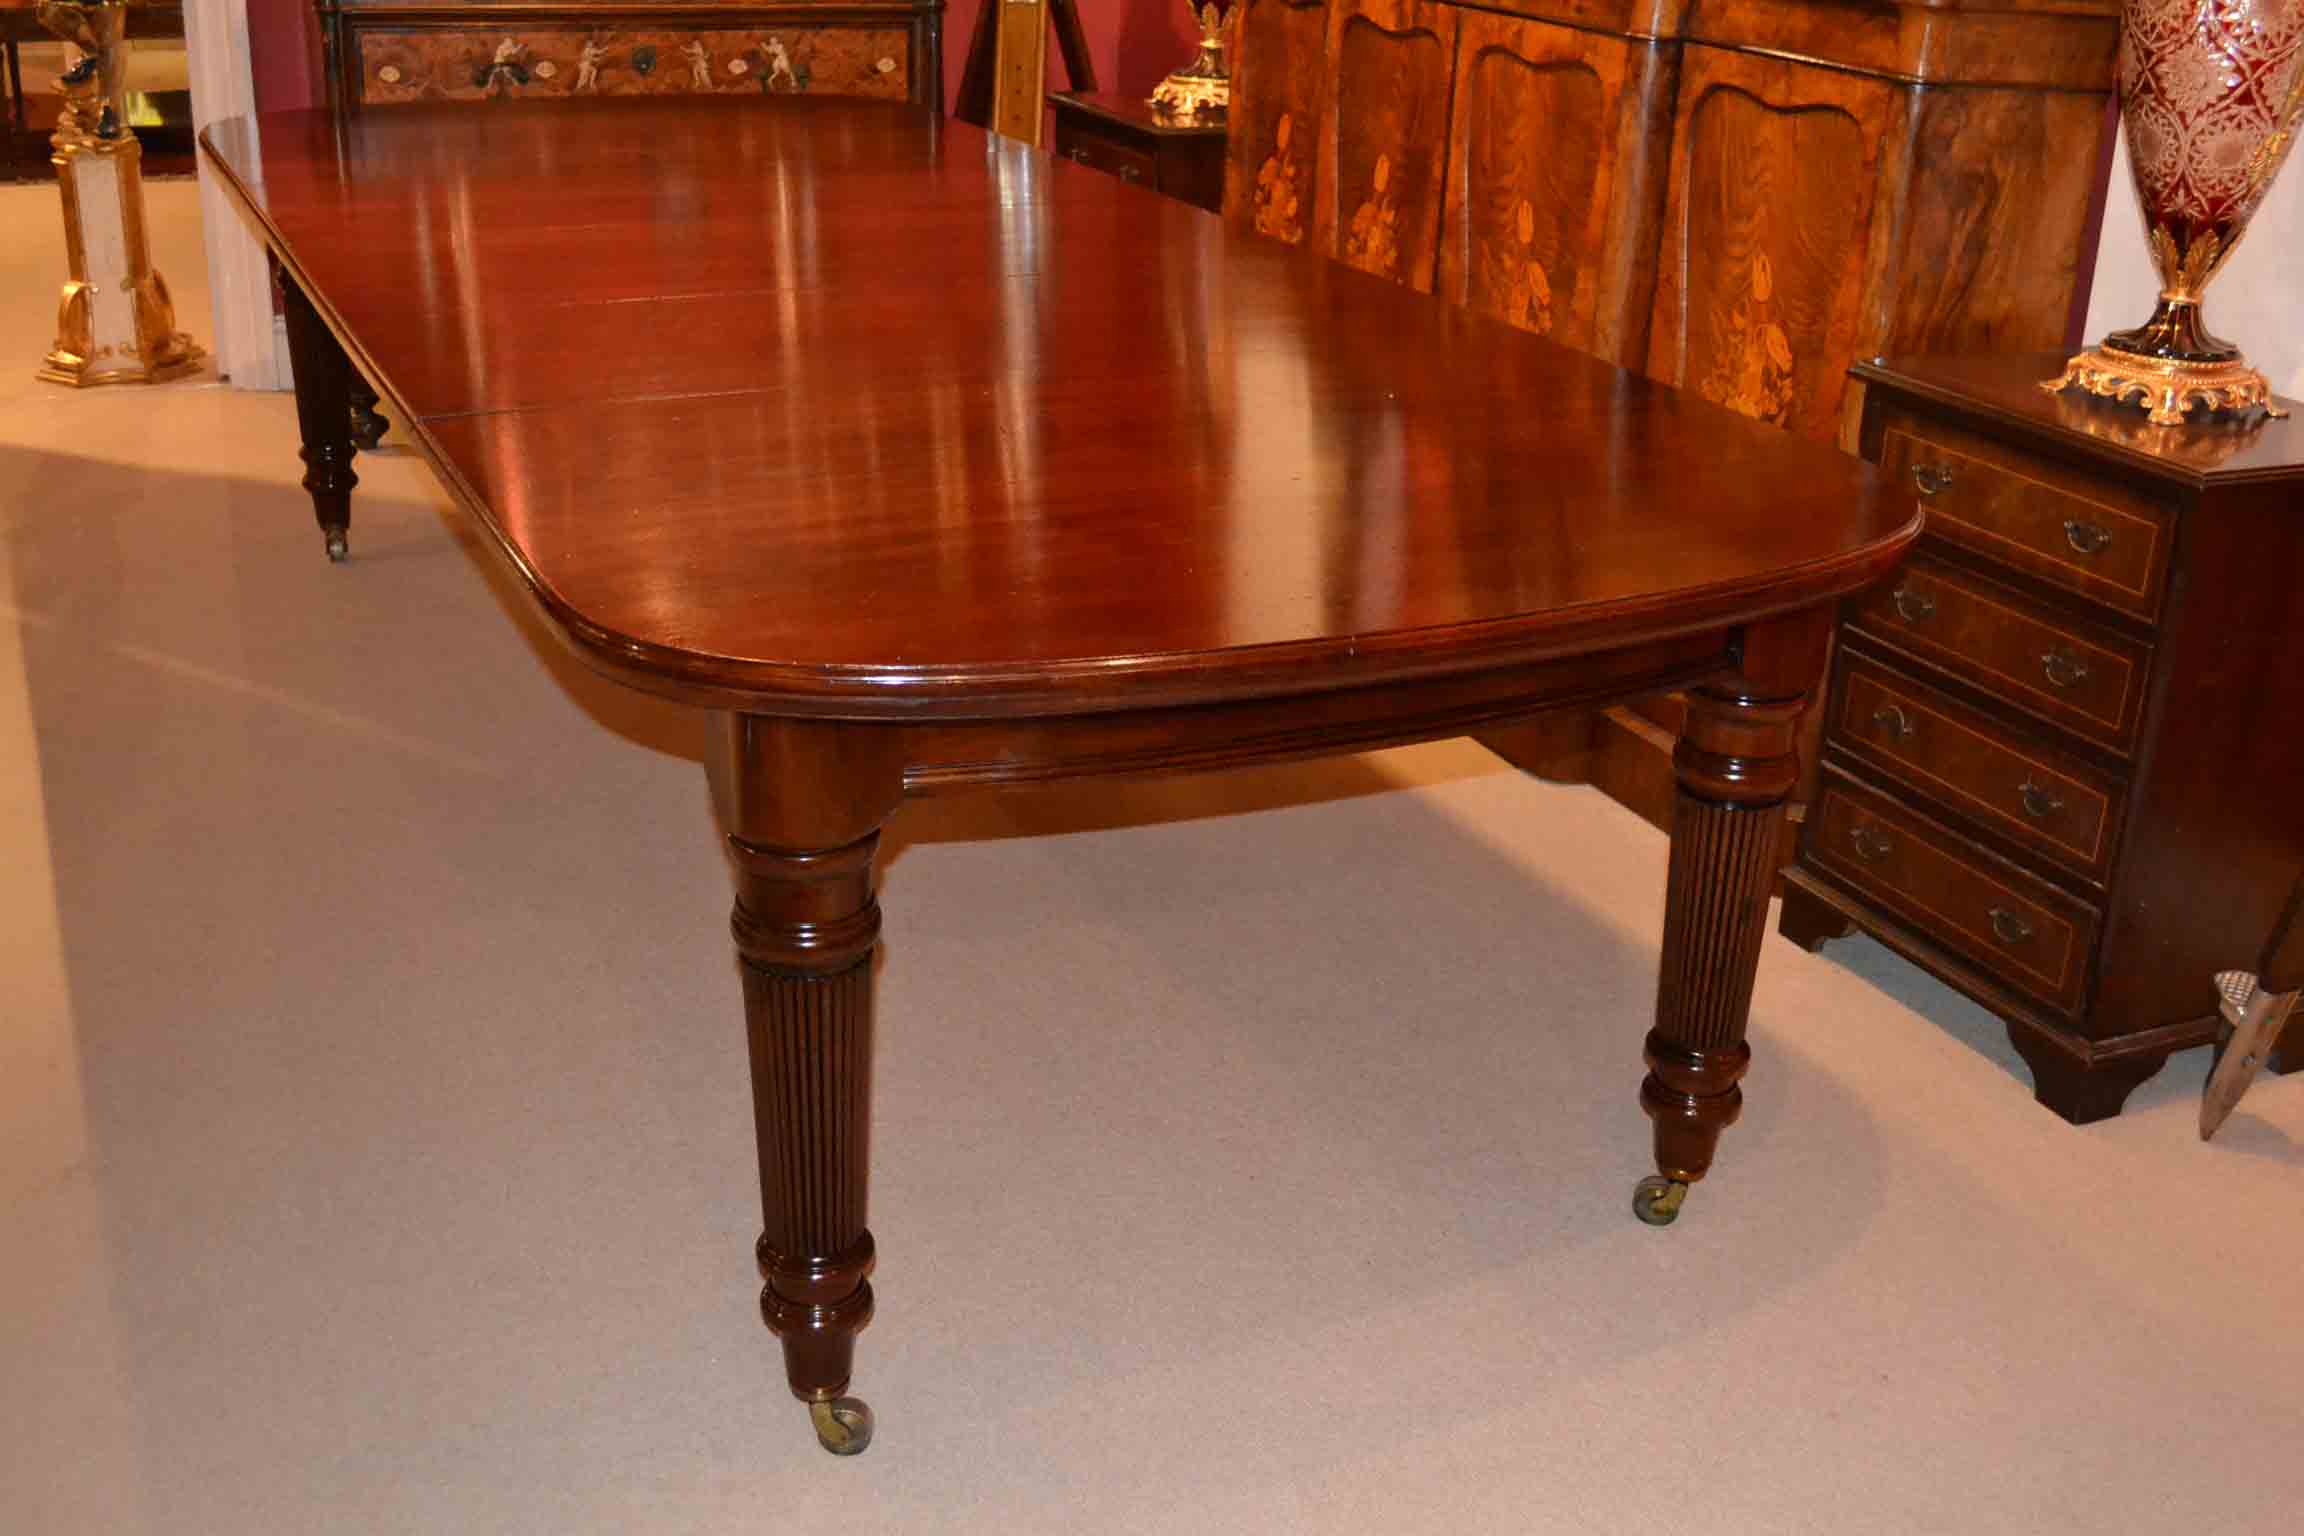 10 Foot Dining Table Regent Antiques Dining Tables And Chairs Table And